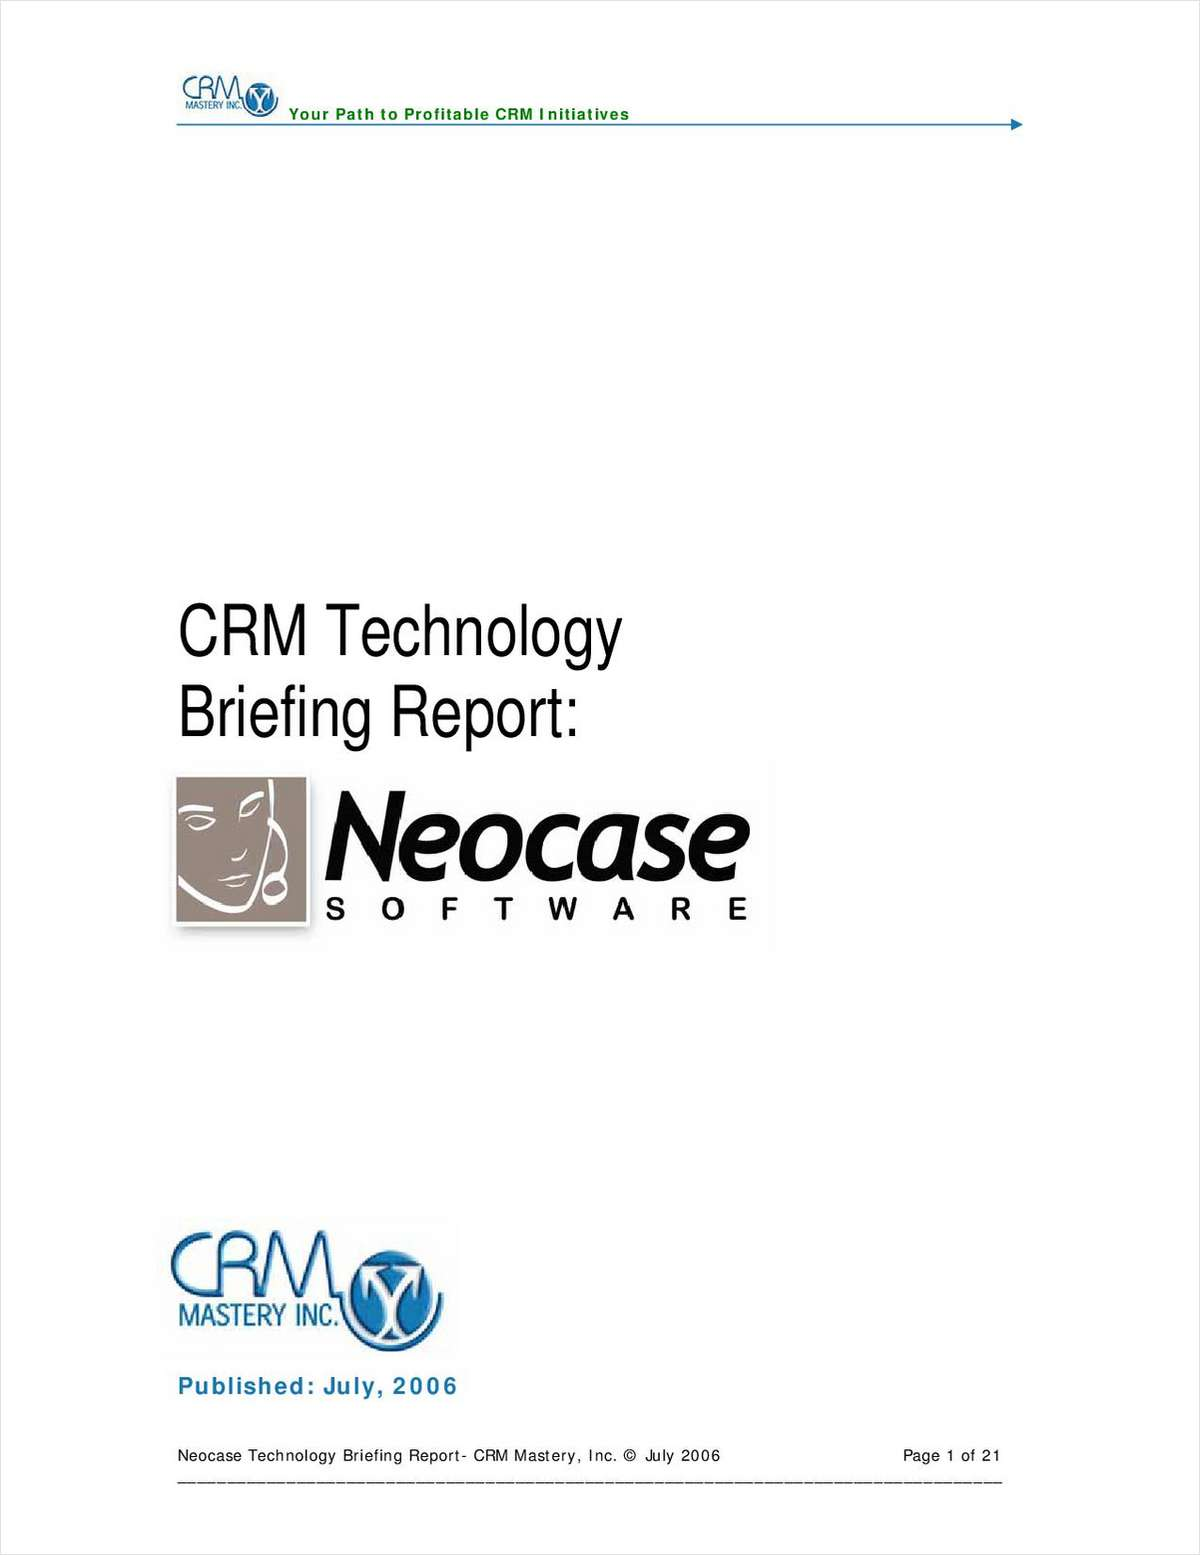 Customer Service Solution: Neocase Software Review